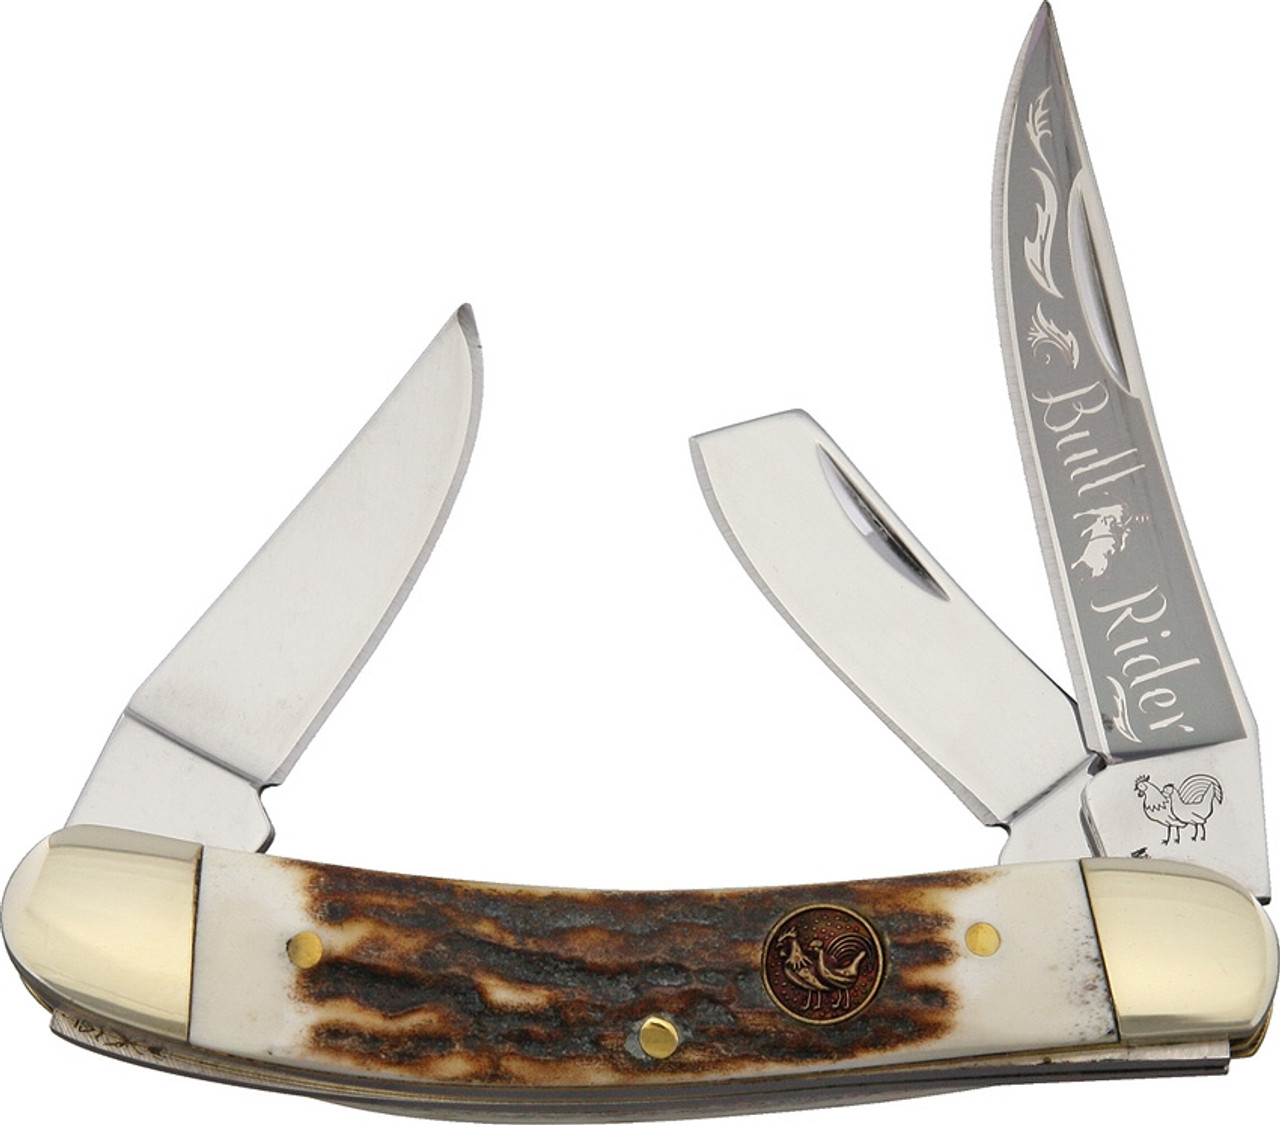 Hen & Rooster HR283DSBR Bullrider Deer Stag, Stainless Steel, Deer Stag Handle